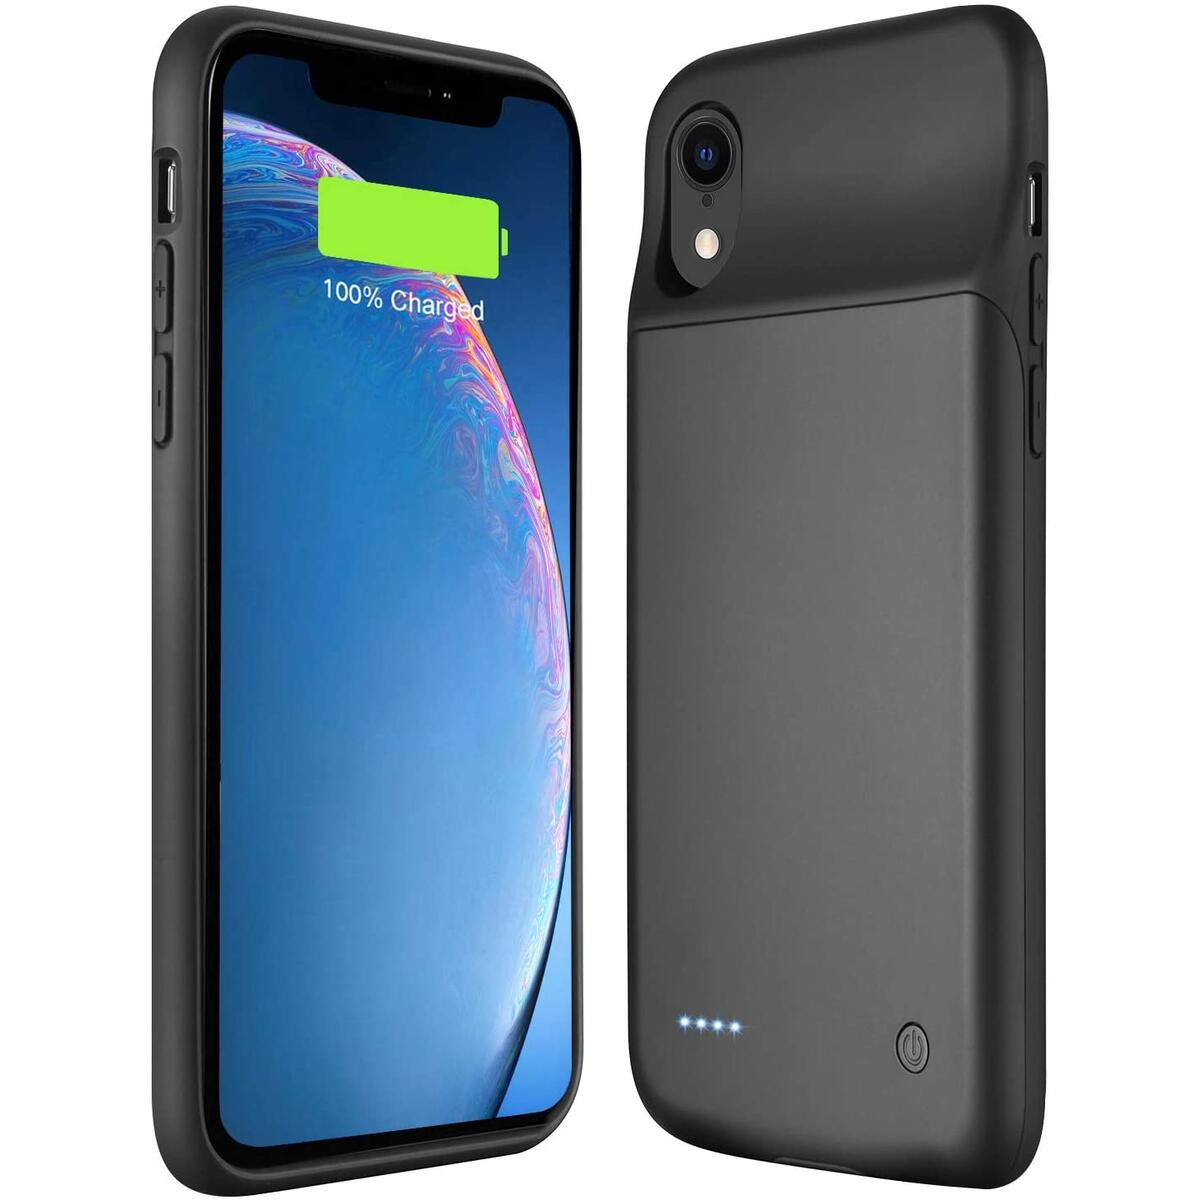 Wixann Battery case for iPhone XR, 4000mAh Slim Portable Charger Case Protective Rechargeable Battery Pack Charging Case for iPhone XR - 6.1inch